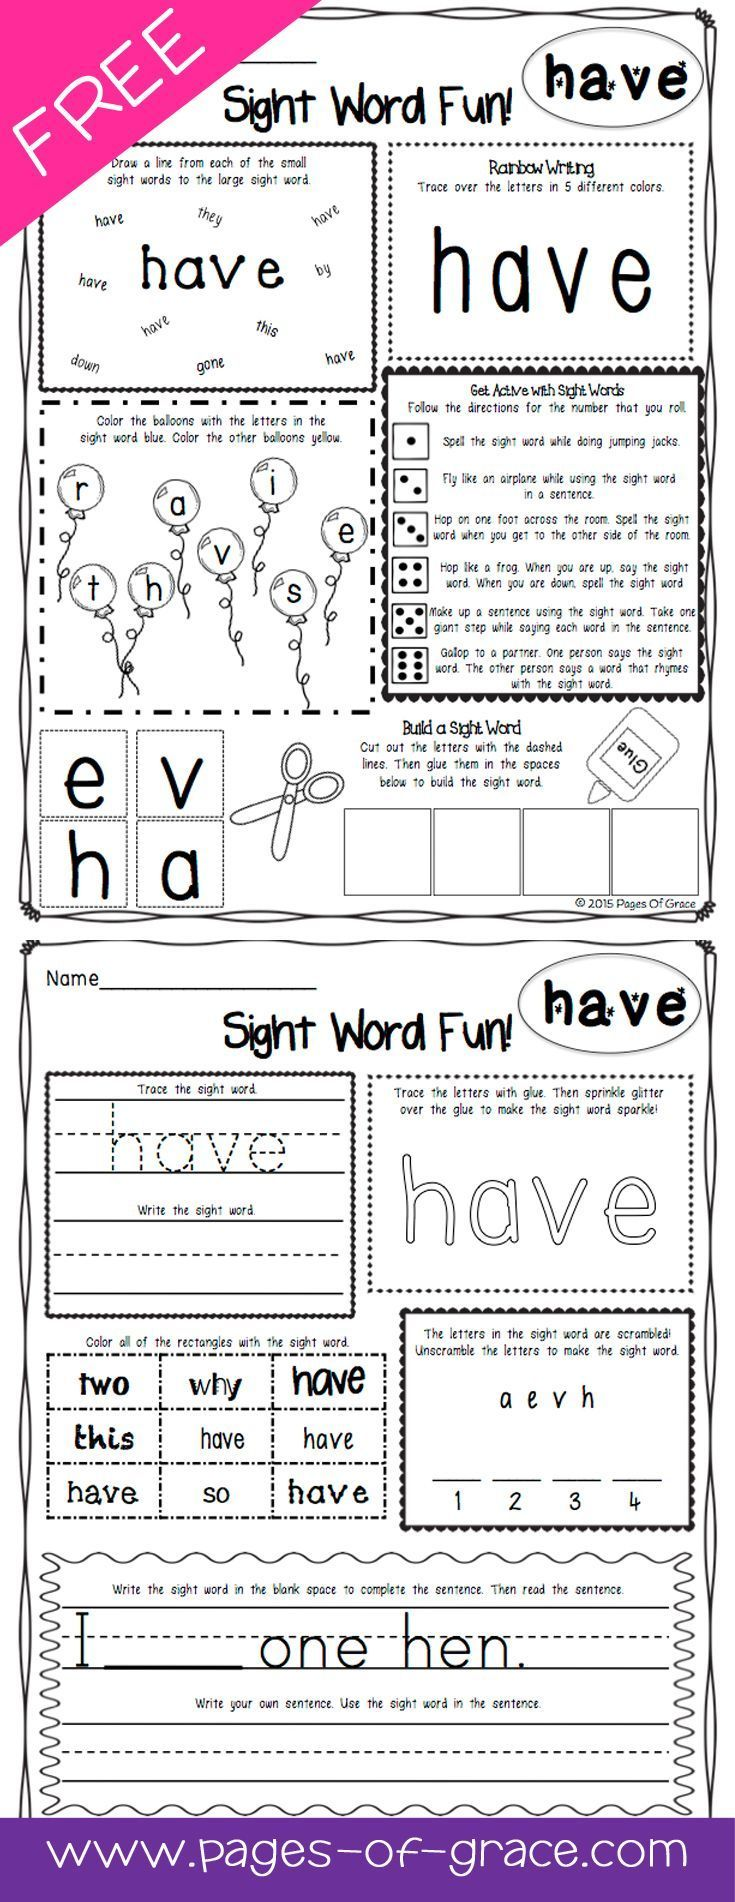 worksheet Free Edmark Reading Program Worksheets powers of 10 math face off 5 nbt 2 common cores kindergarten and students